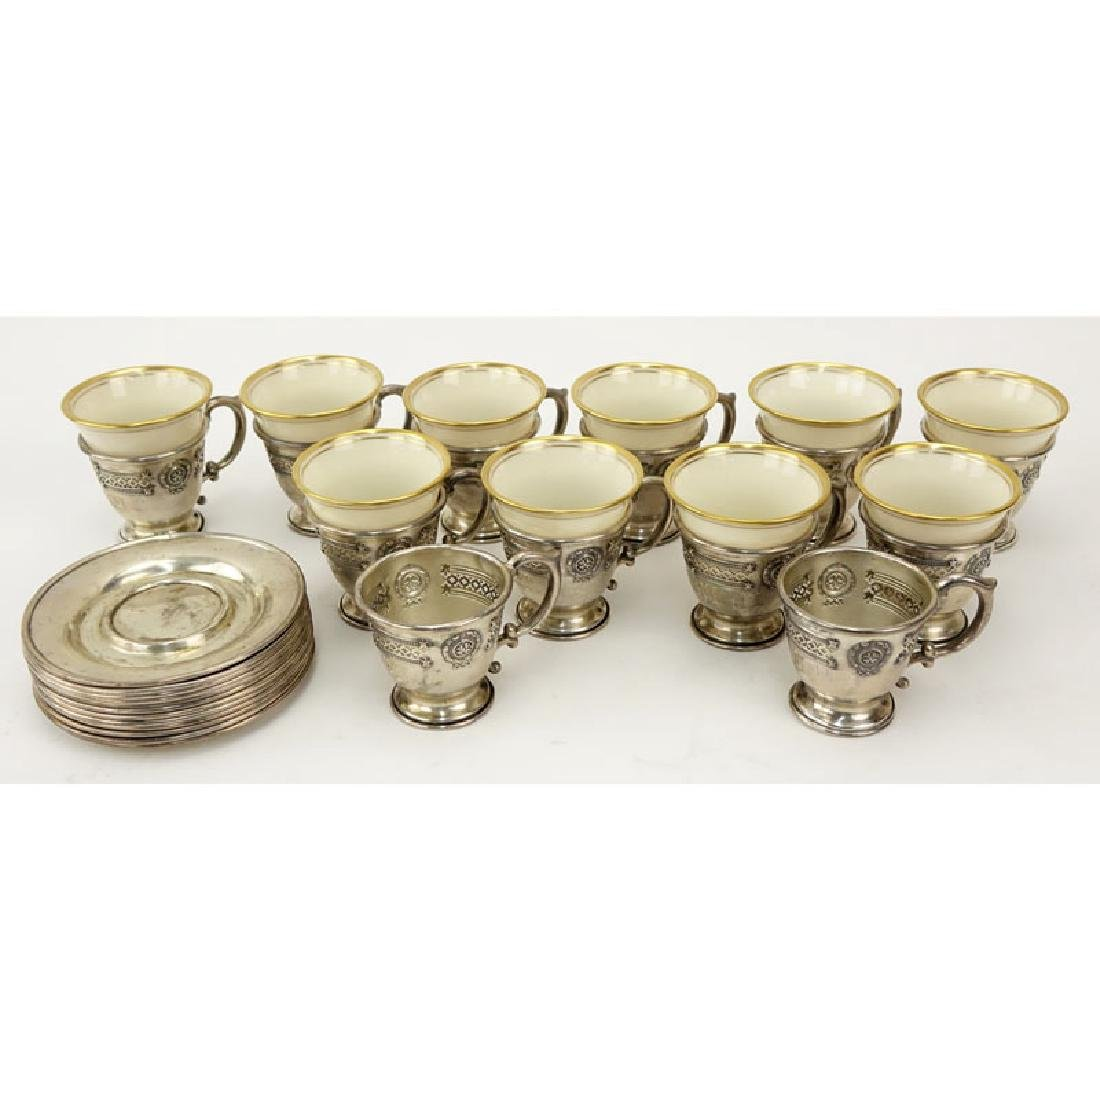 Set of Sterling and Porcelain Demitasse Cups and